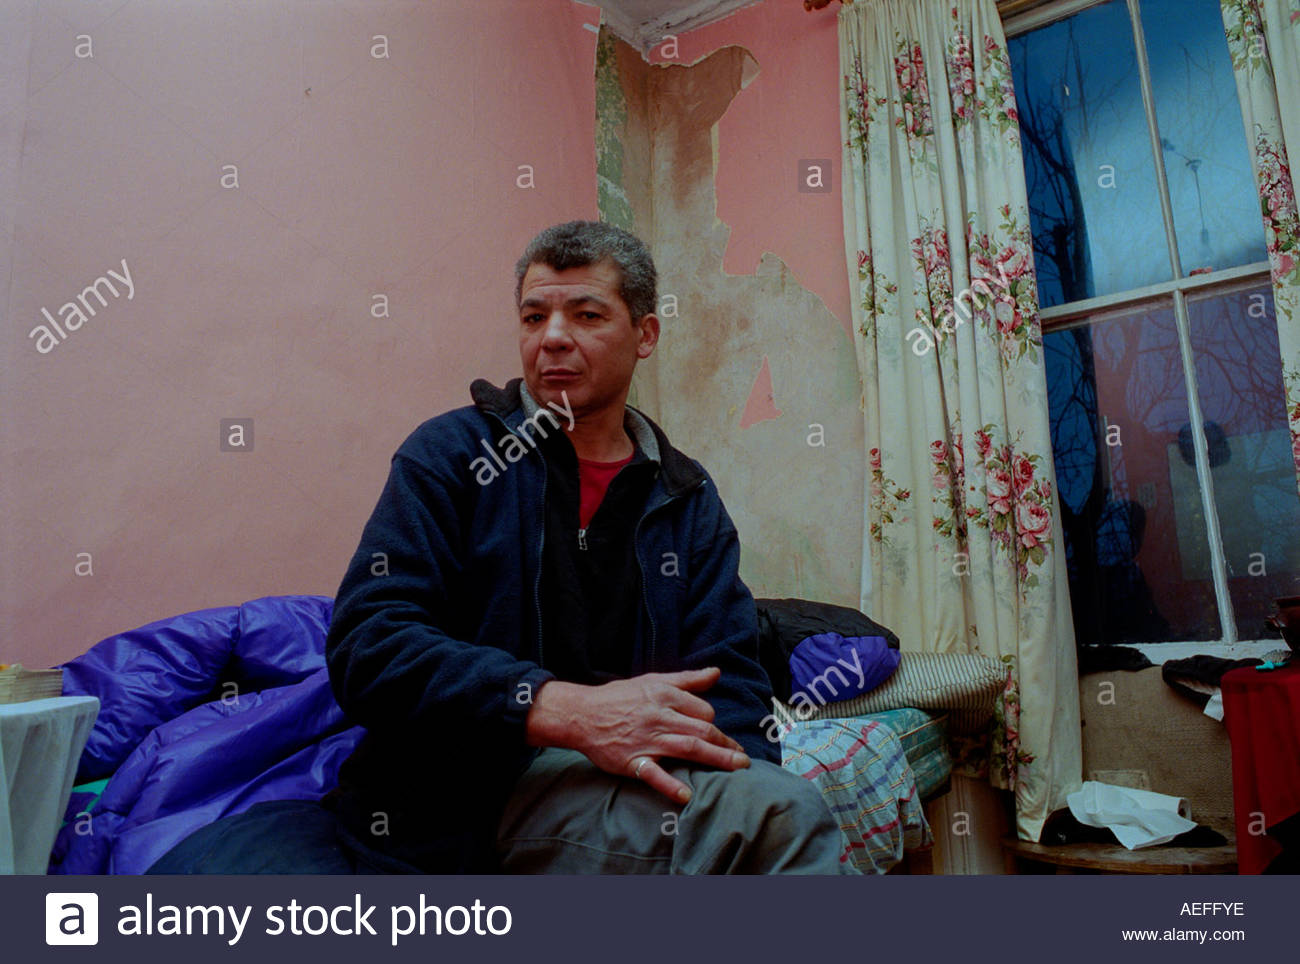 Middle age man living on his own in a room in alternative living accommodation in a London squat. - Stock Image